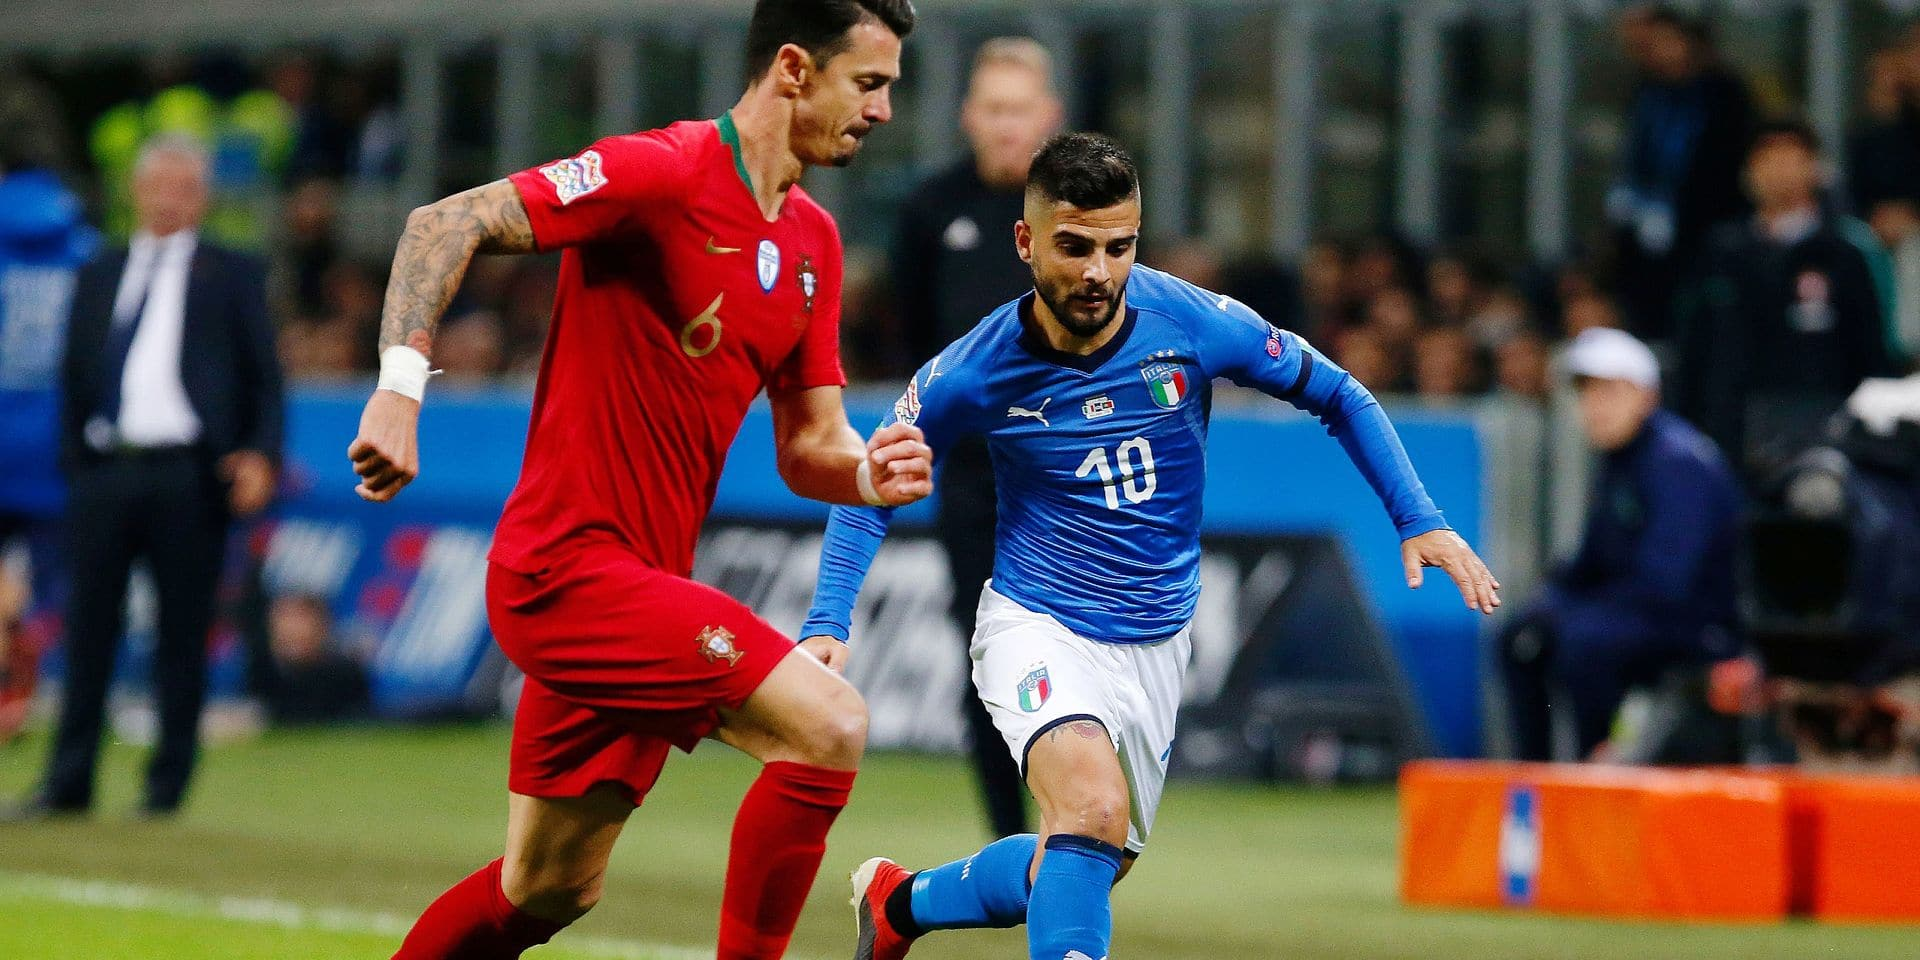 Italy's Lorenzo Insigne, right, and Portugal's Jose Fonte vie for the ball during the UEFA Nations League soccer match between Italy and Portugal at the San Siro Stadium, in Milan, Saturday, Nov. 17, 2018. (AP Photo/Antonio Calanni)